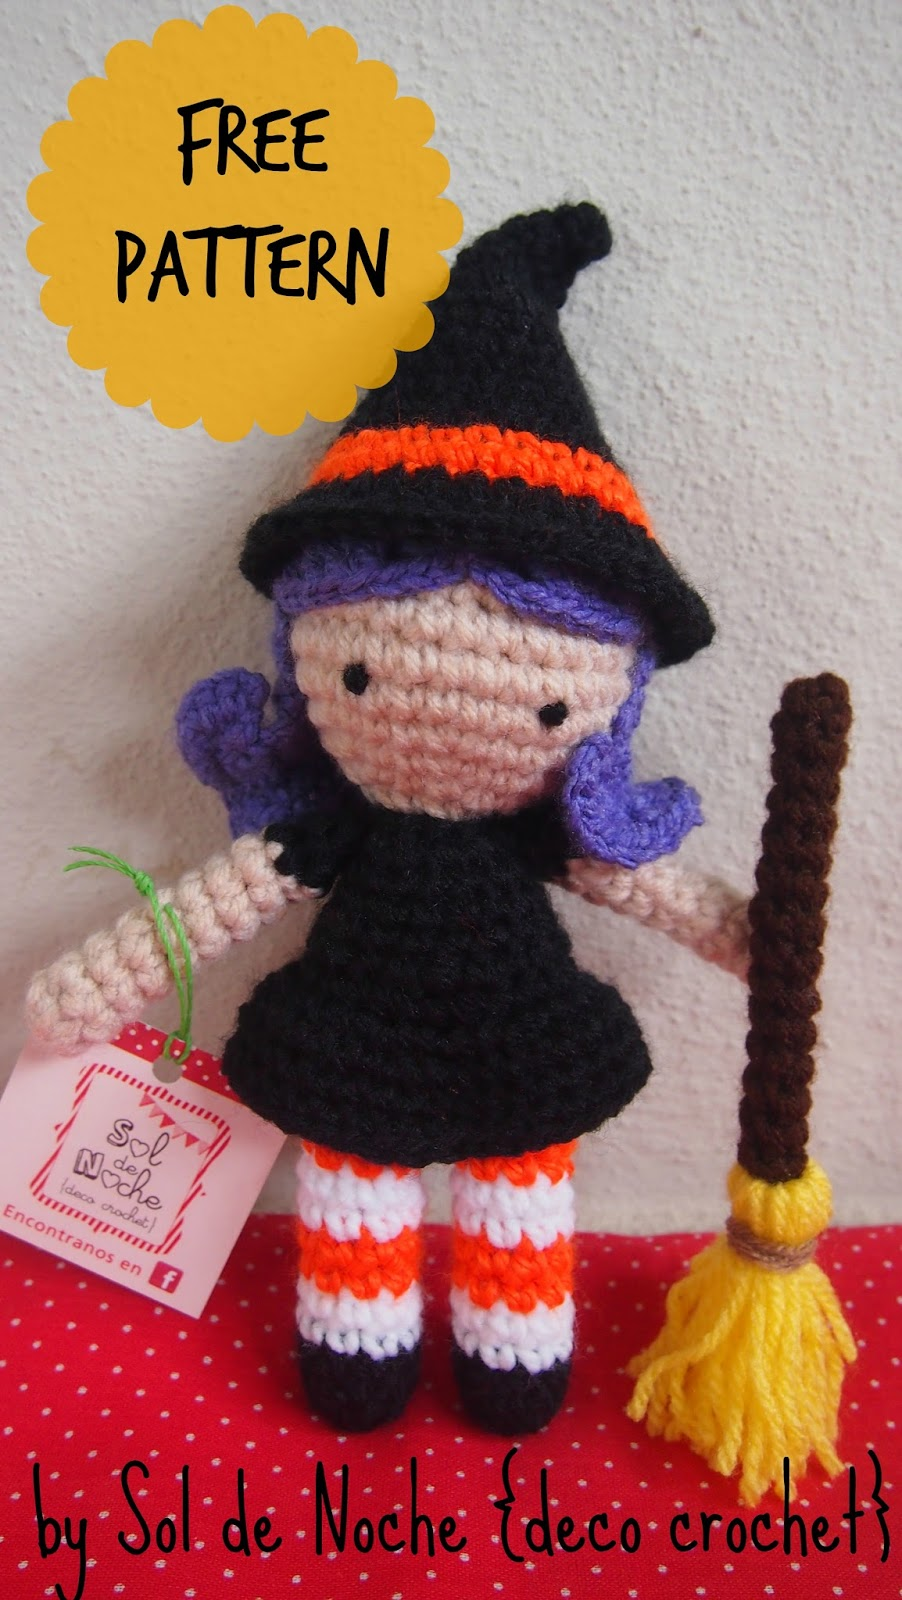 sol de noche deco crochet free pattern little witch. Black Bedroom Furniture Sets. Home Design Ideas